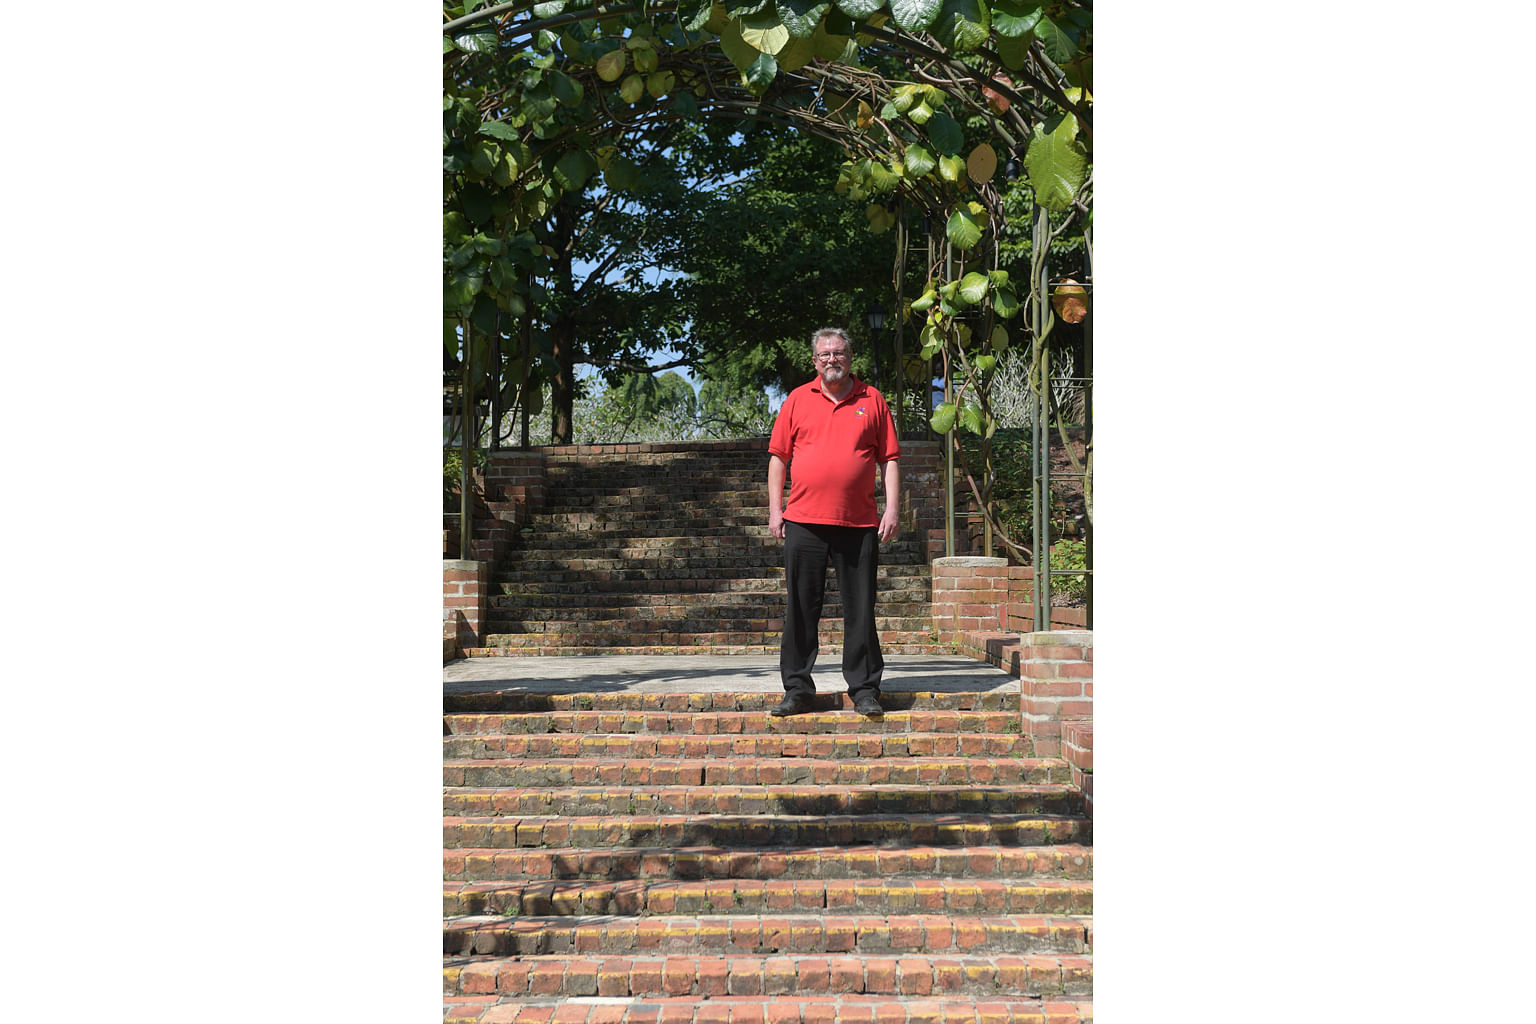 Established in 1859, the Singapore Botanic Gardens is the oldest garden in the country, and rich in history. Dr Nigel Taylor (above) stands at two flights of brick steps built by Australian prisoners of war (POWs) during the Japanese occu